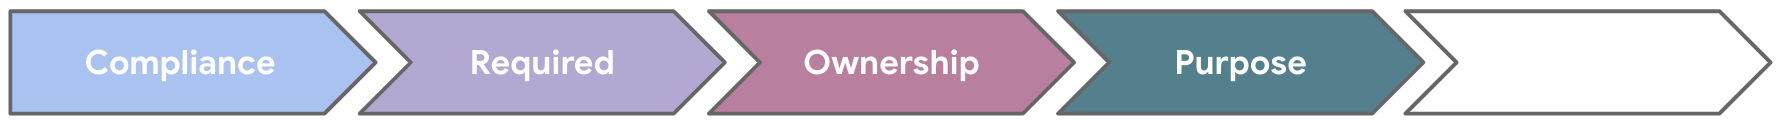 Five arrows, with the first four steps of 'Compliance', 'Required', 'Ownership', and 'Purpose' completed.